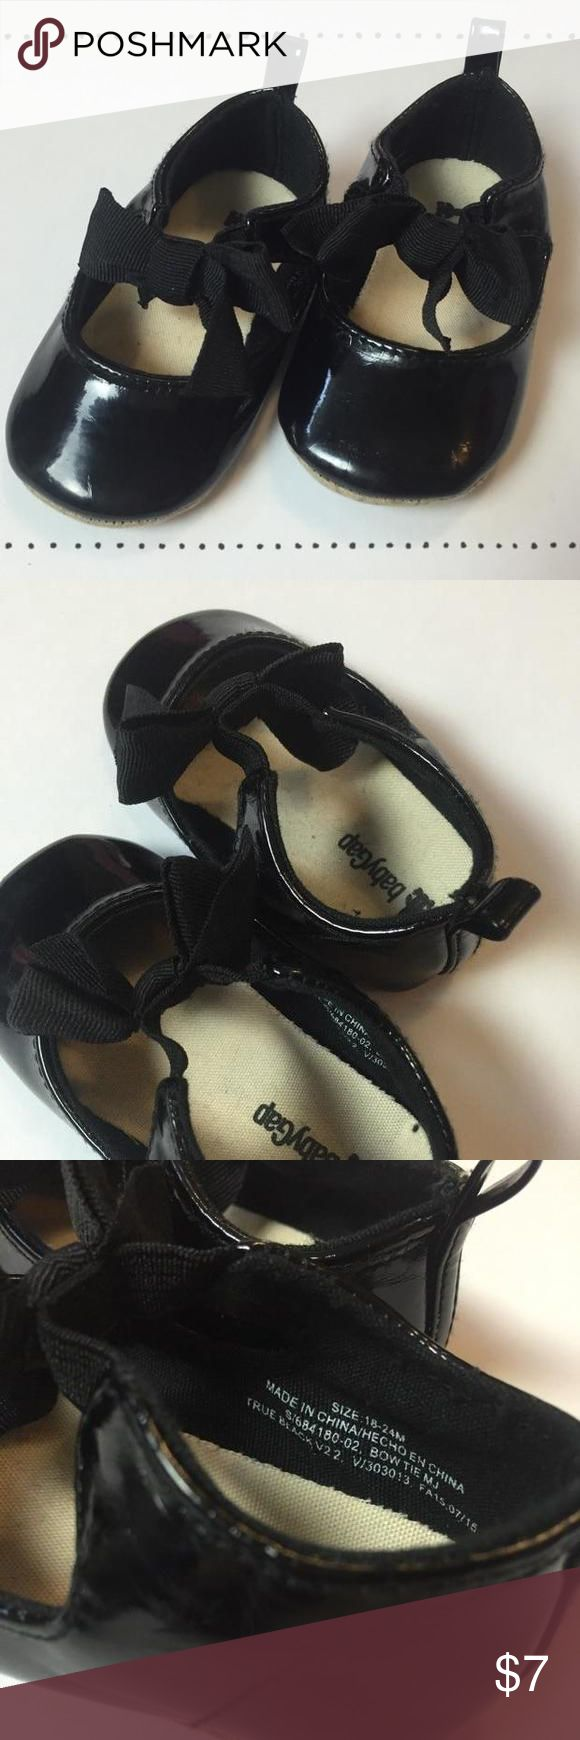 Baby Gap Shoes EUC! Baby Gap 18-24M black patent leather crib shoes. Absolutely adorable! 😍 Baby Gap Shoes